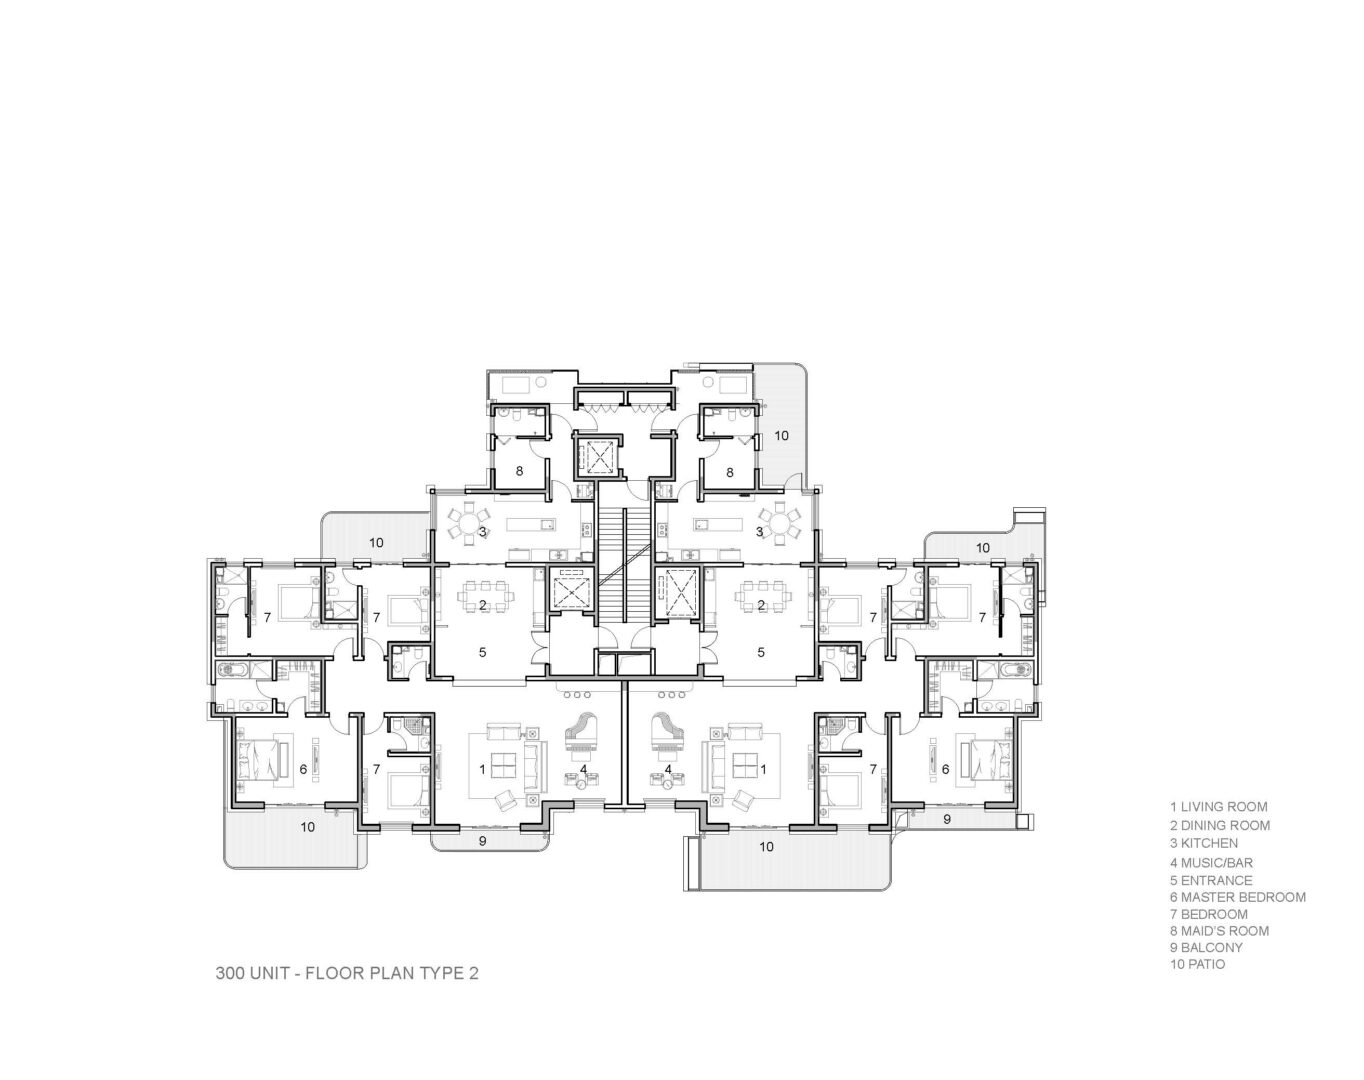 1212_floor-plan_300-unit-type-2